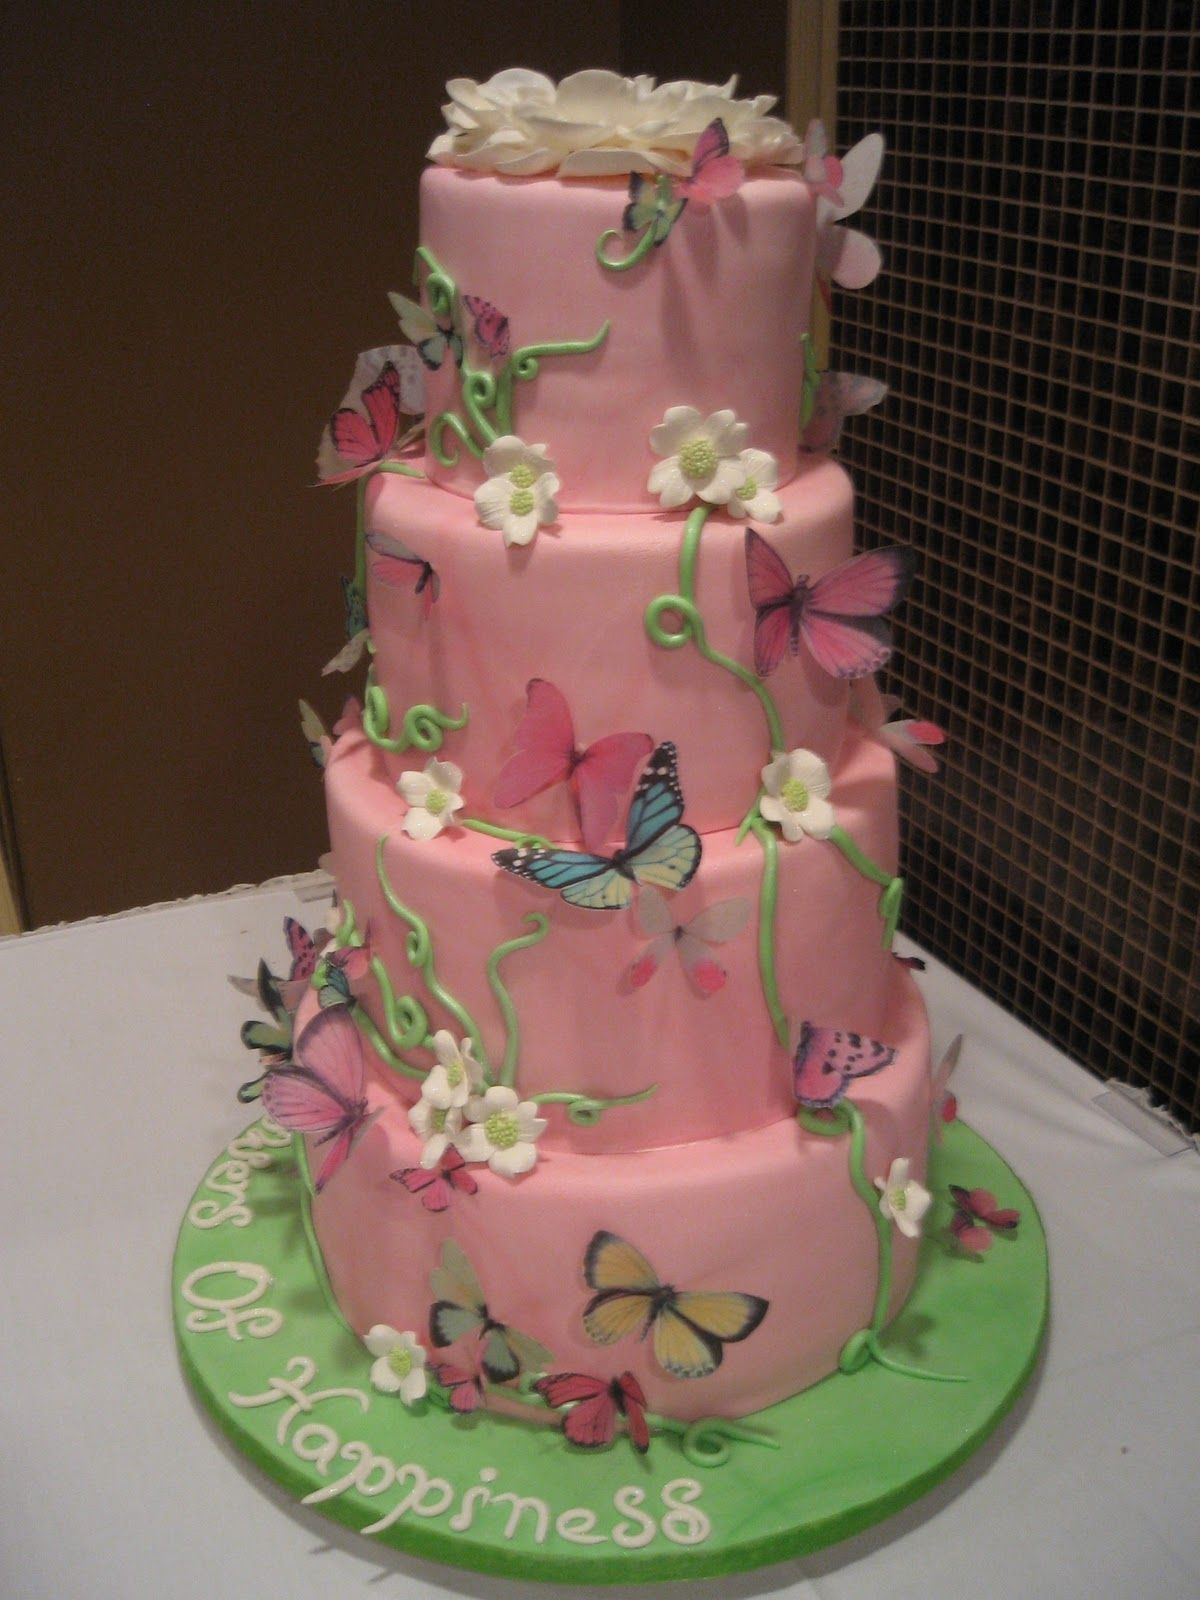 Explore Butterfly Baby Shower, Baby Shower Cakes And More!